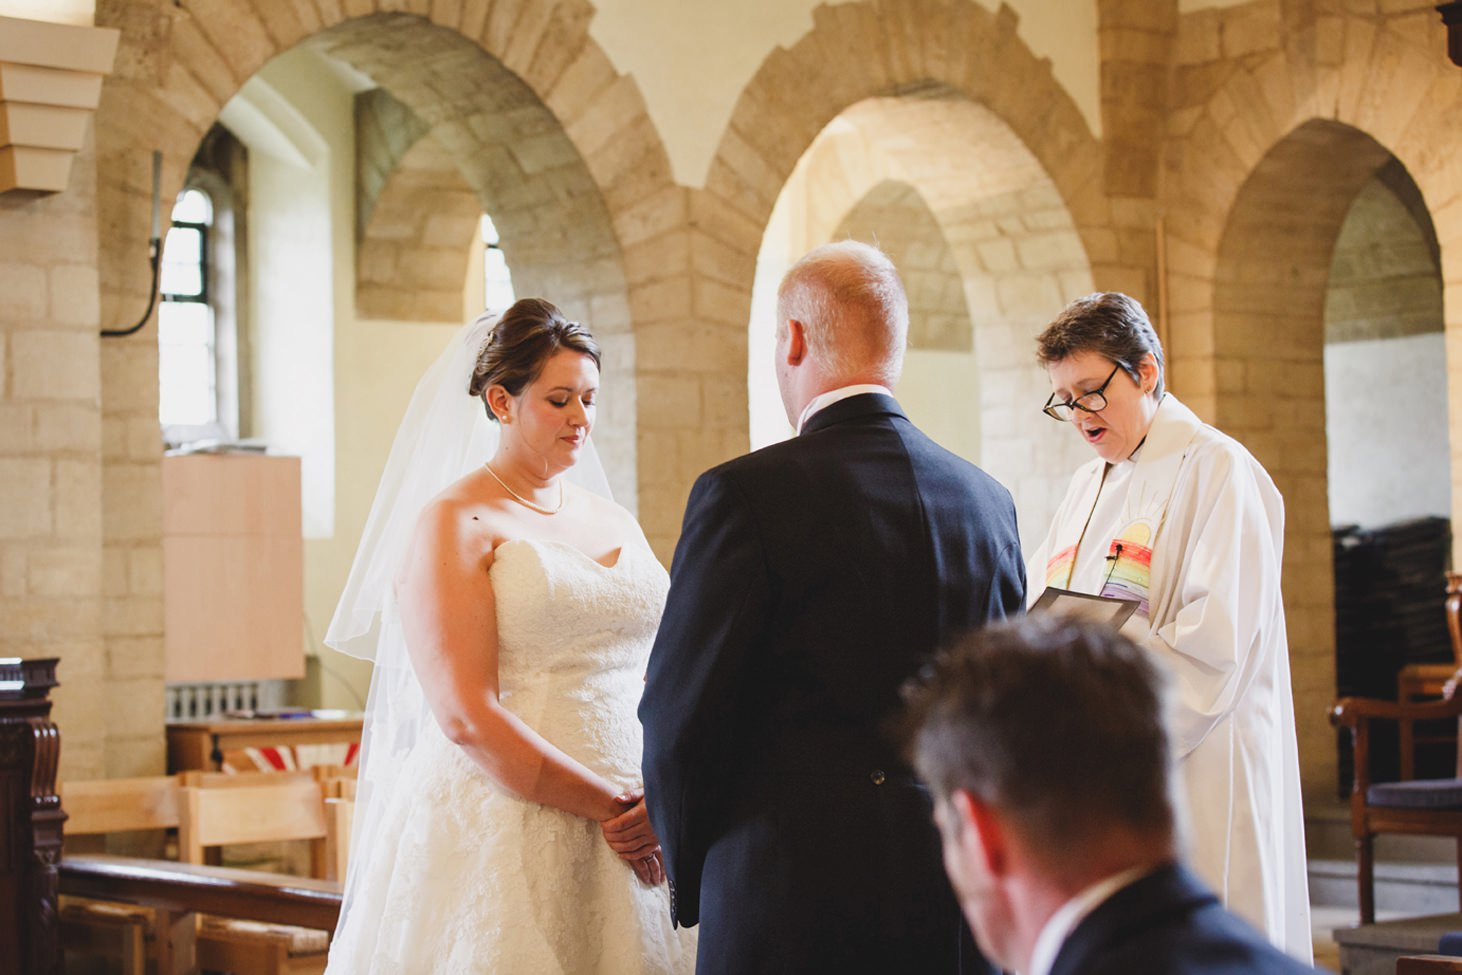 Wycombe Abbey wedding photography bride and groom exchange vows